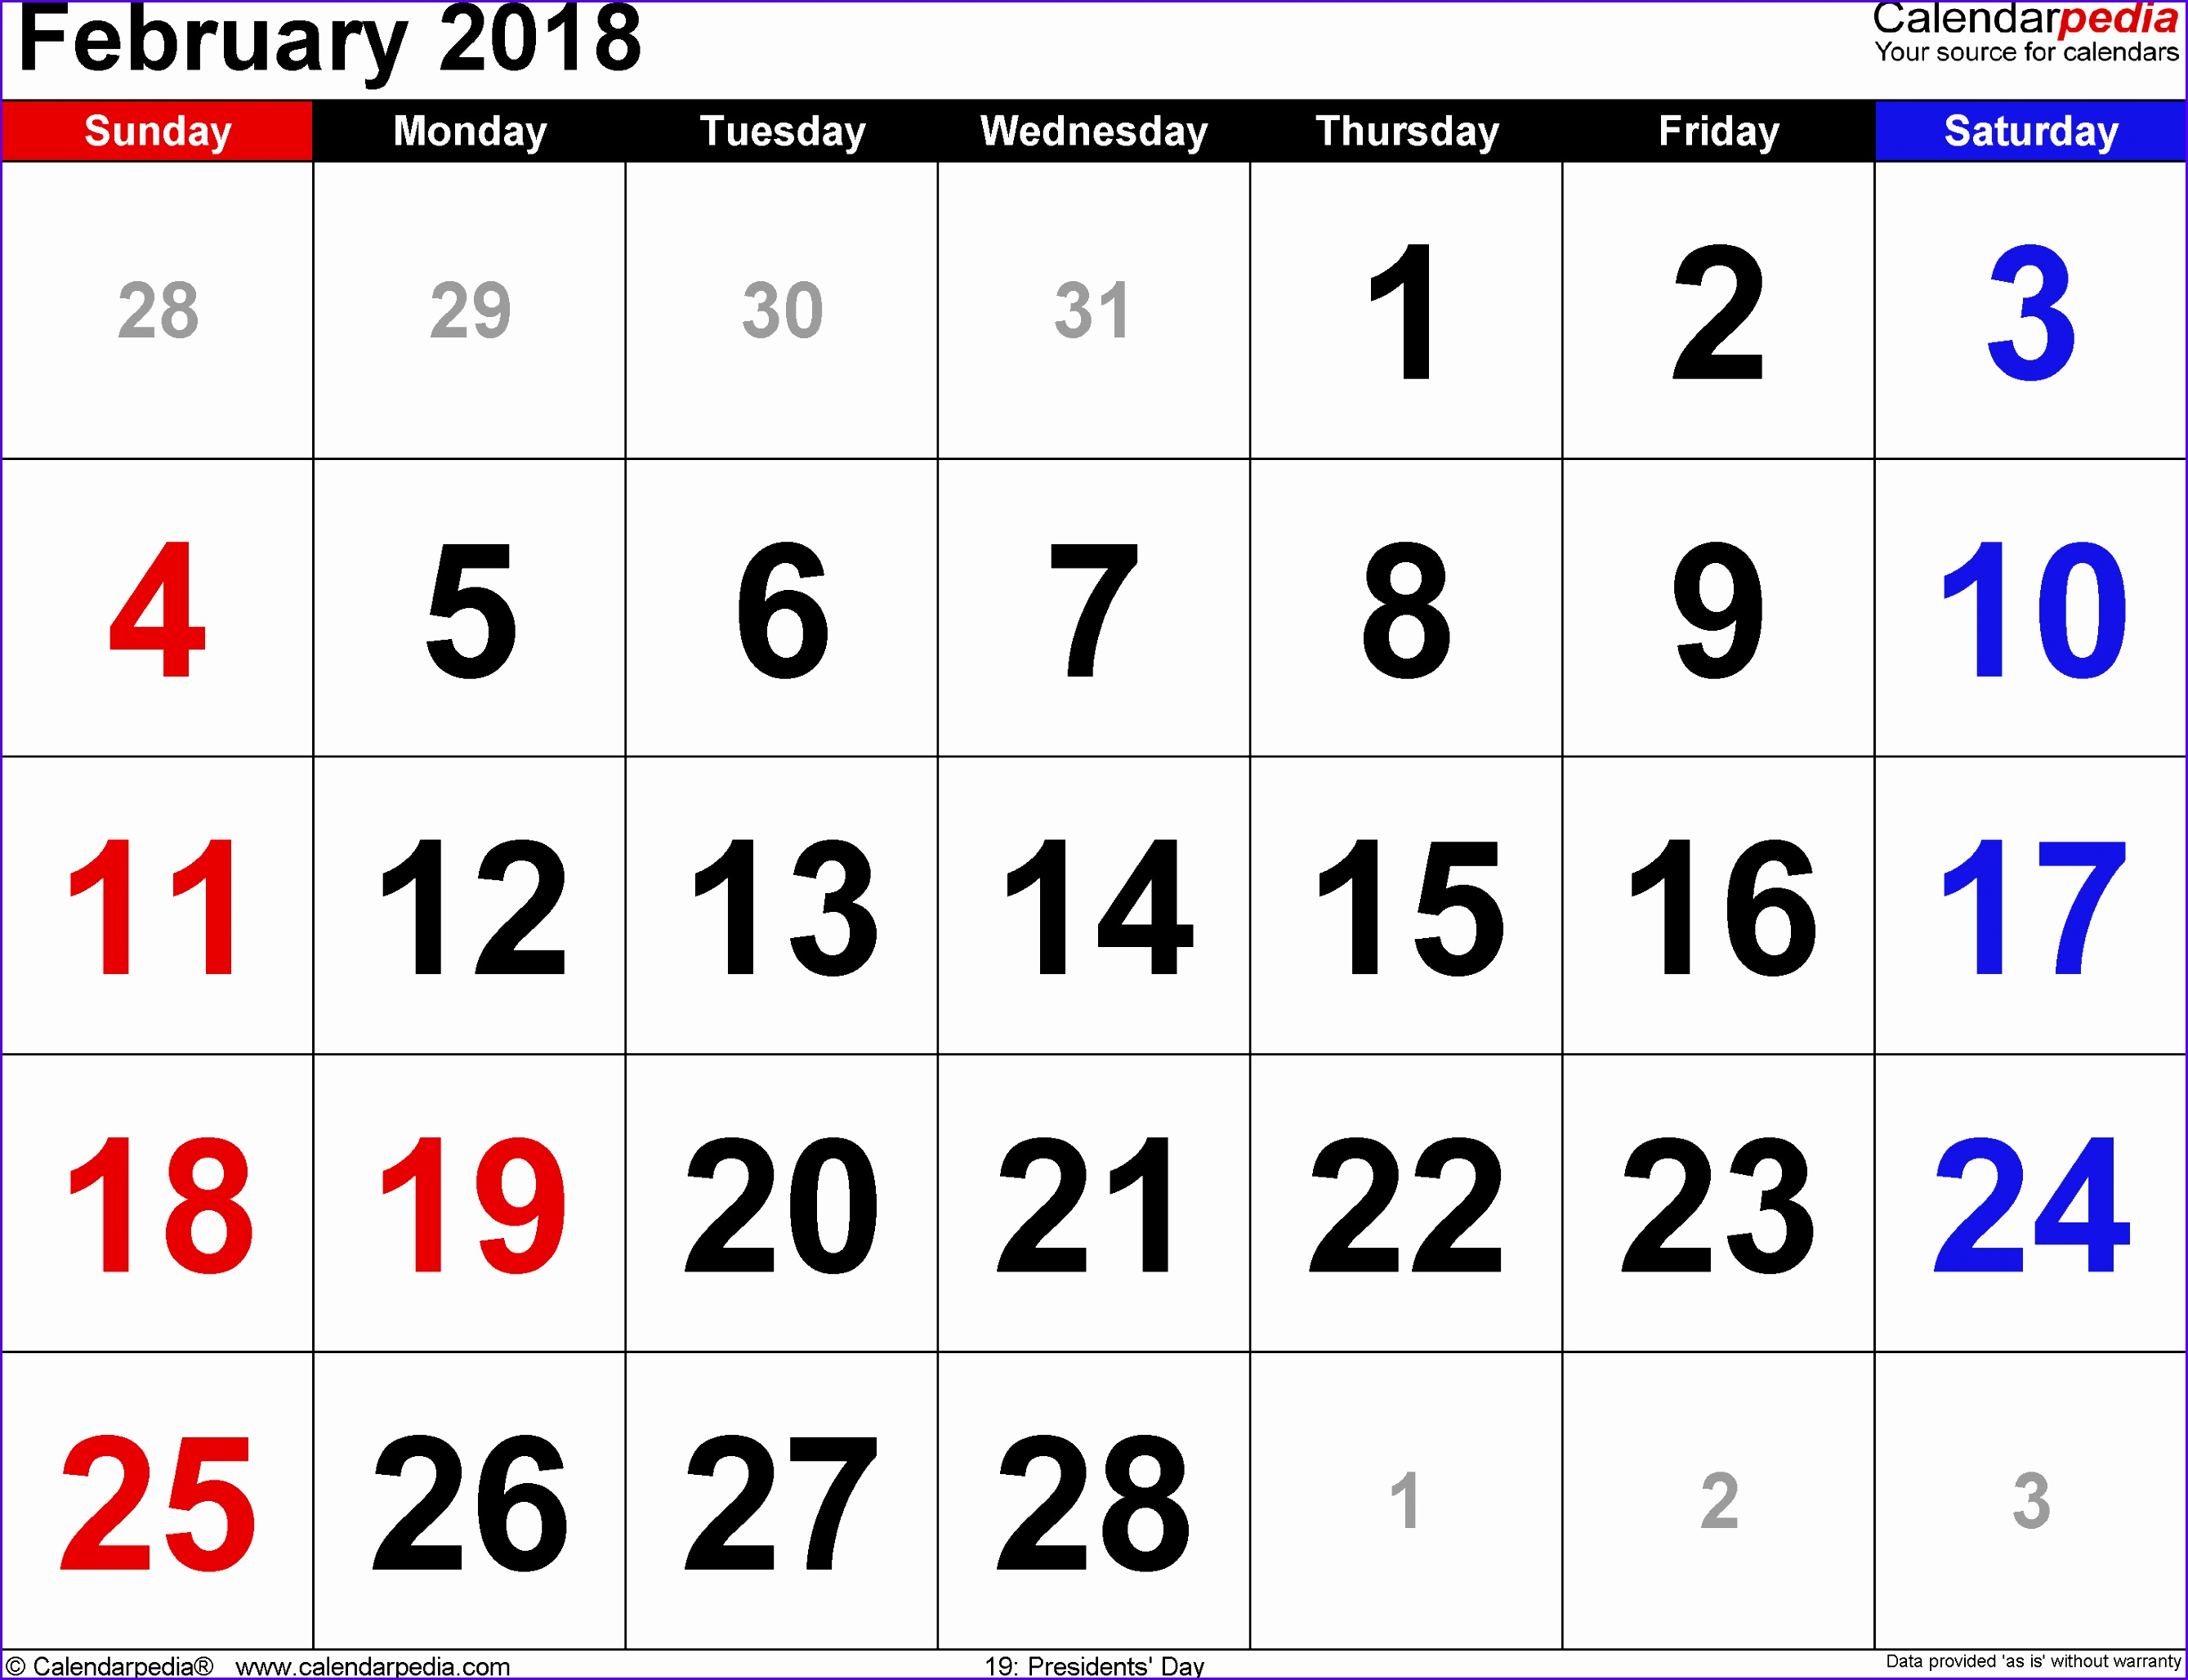 February 2018 Calendars for Word Excel & PDF 26782056